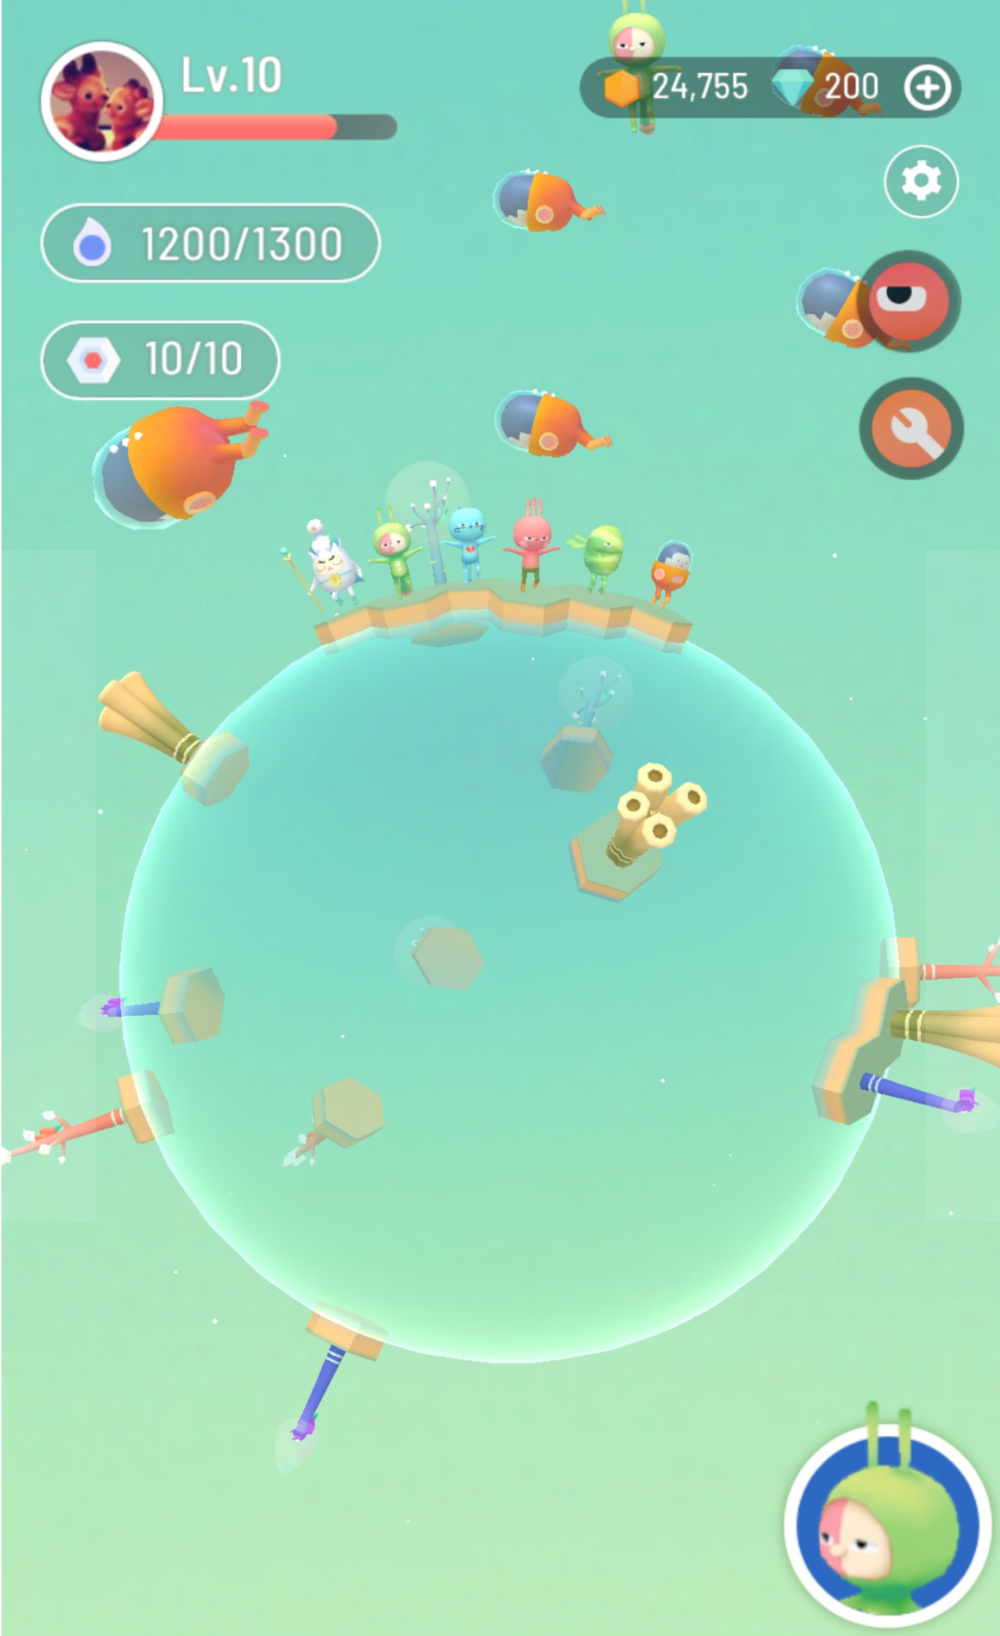 BUILD YOUR OWN SPACE - On this platform, we make sure customization is the top priority, that users operate their space with a lot of personalization. In this spaces, resources area generated to attract interactions between other users and other unique characters on this platform.